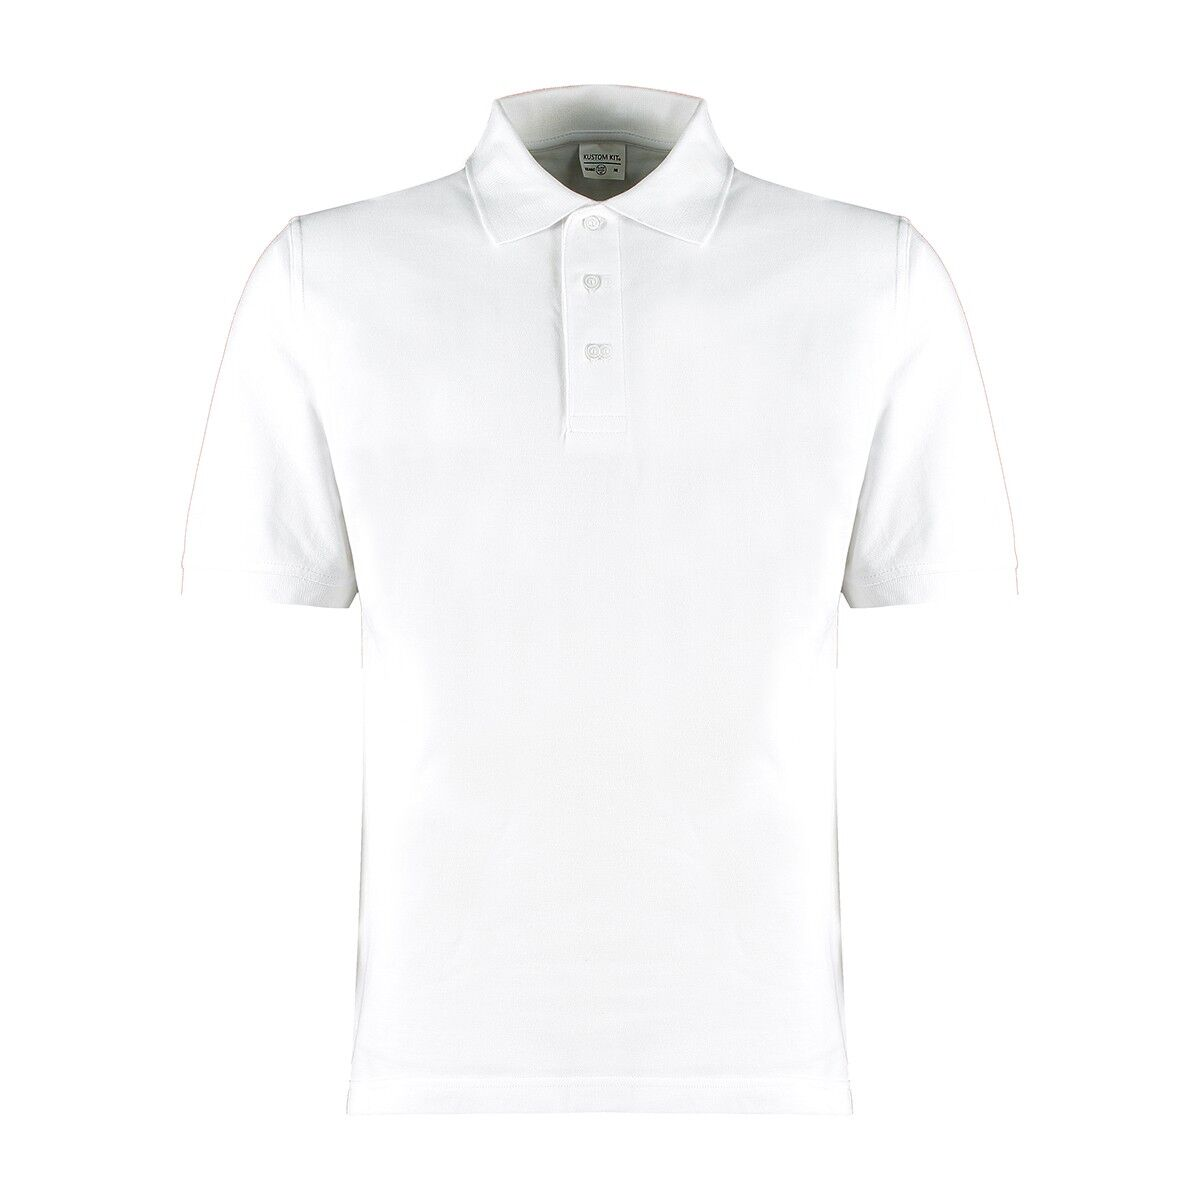 Kutom Kit Cotton Klassic Polo Shirt White